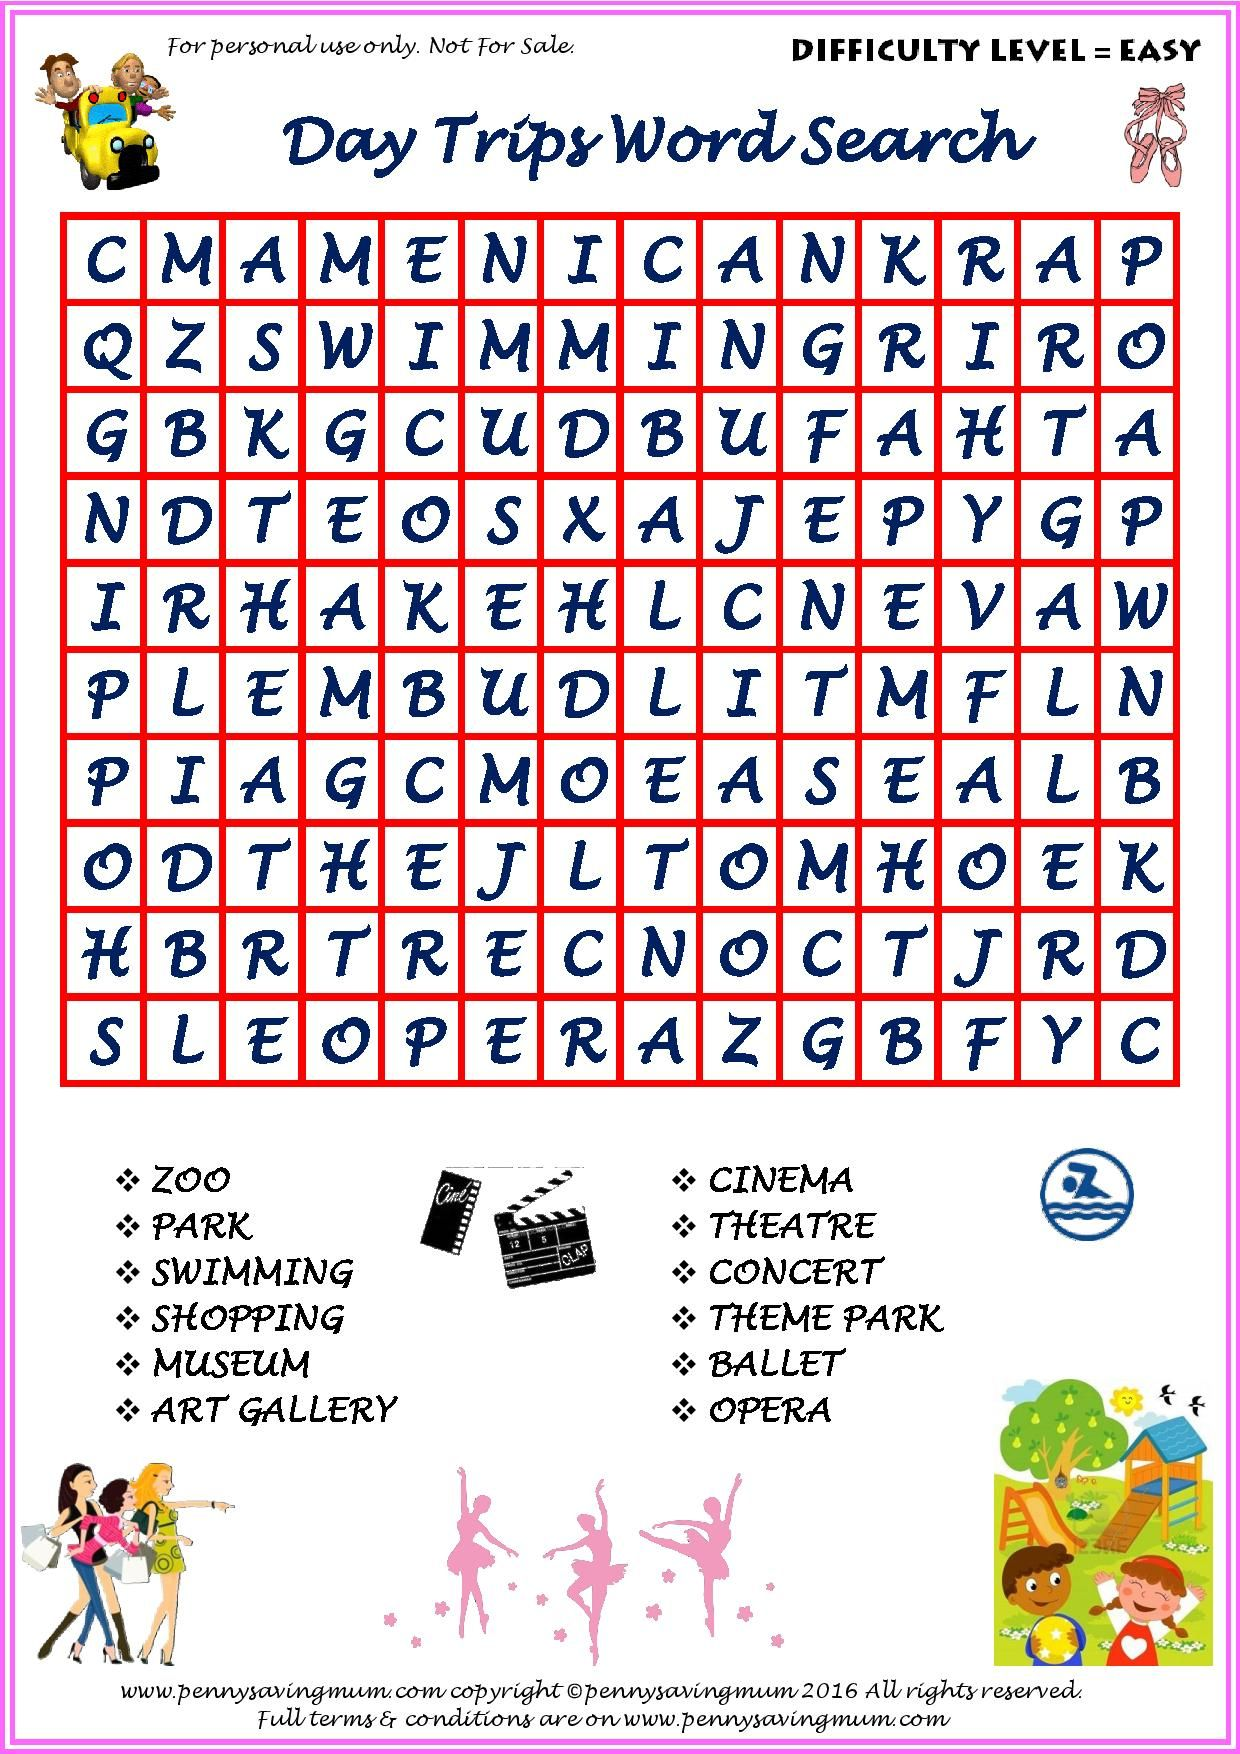 Word Search Day Trips (Easy Version) | Craft Ideas in 2018 ...